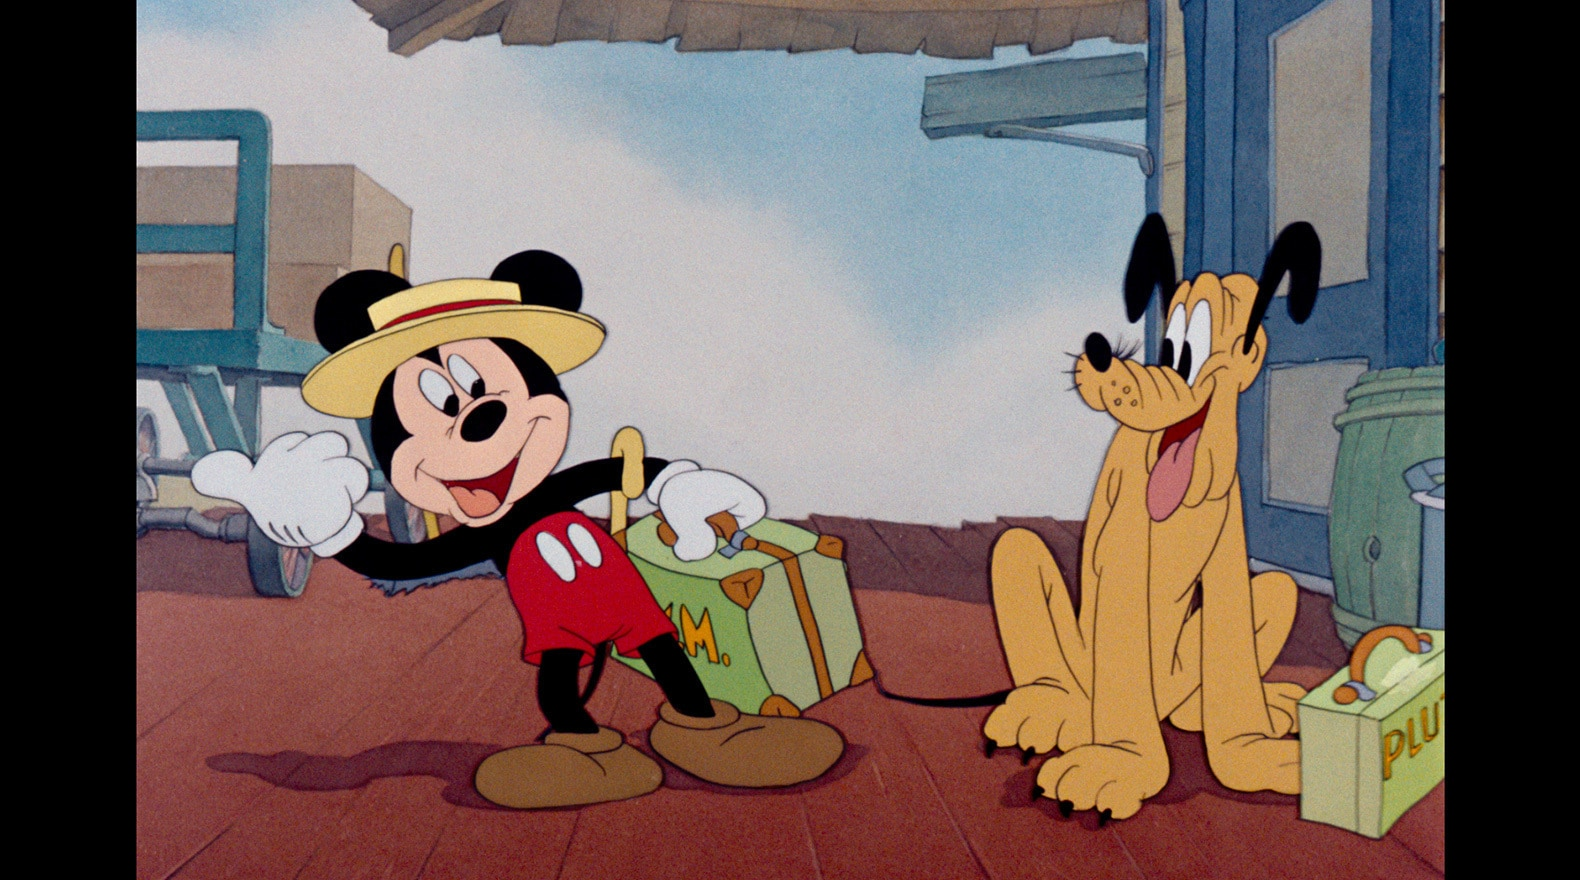 Mickey gets ready for a trip on the train, with Pluto in tow.